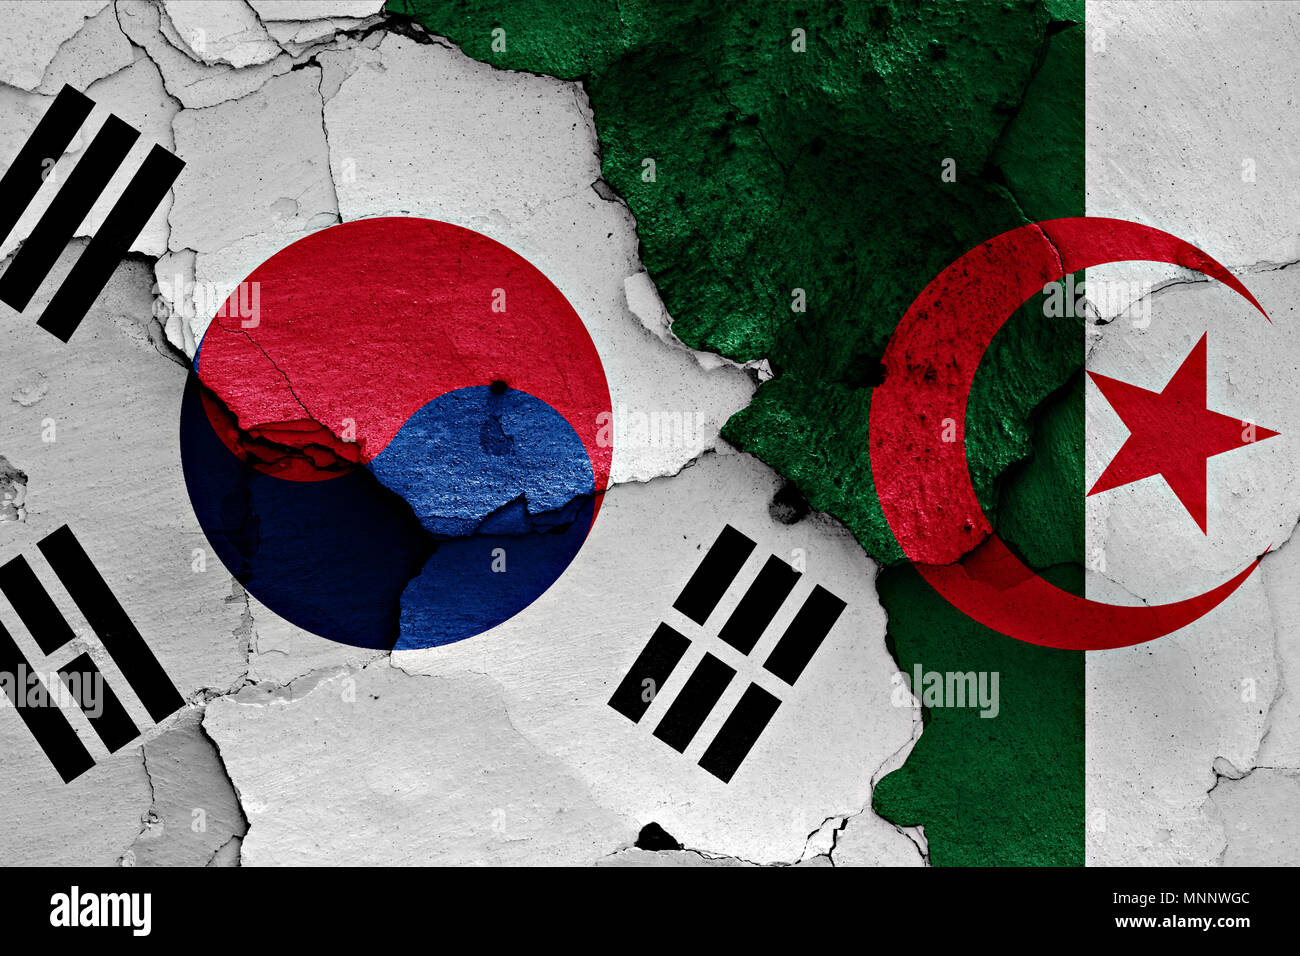 flags of South Korea and Algeria painted on cracked wall - Stock Image